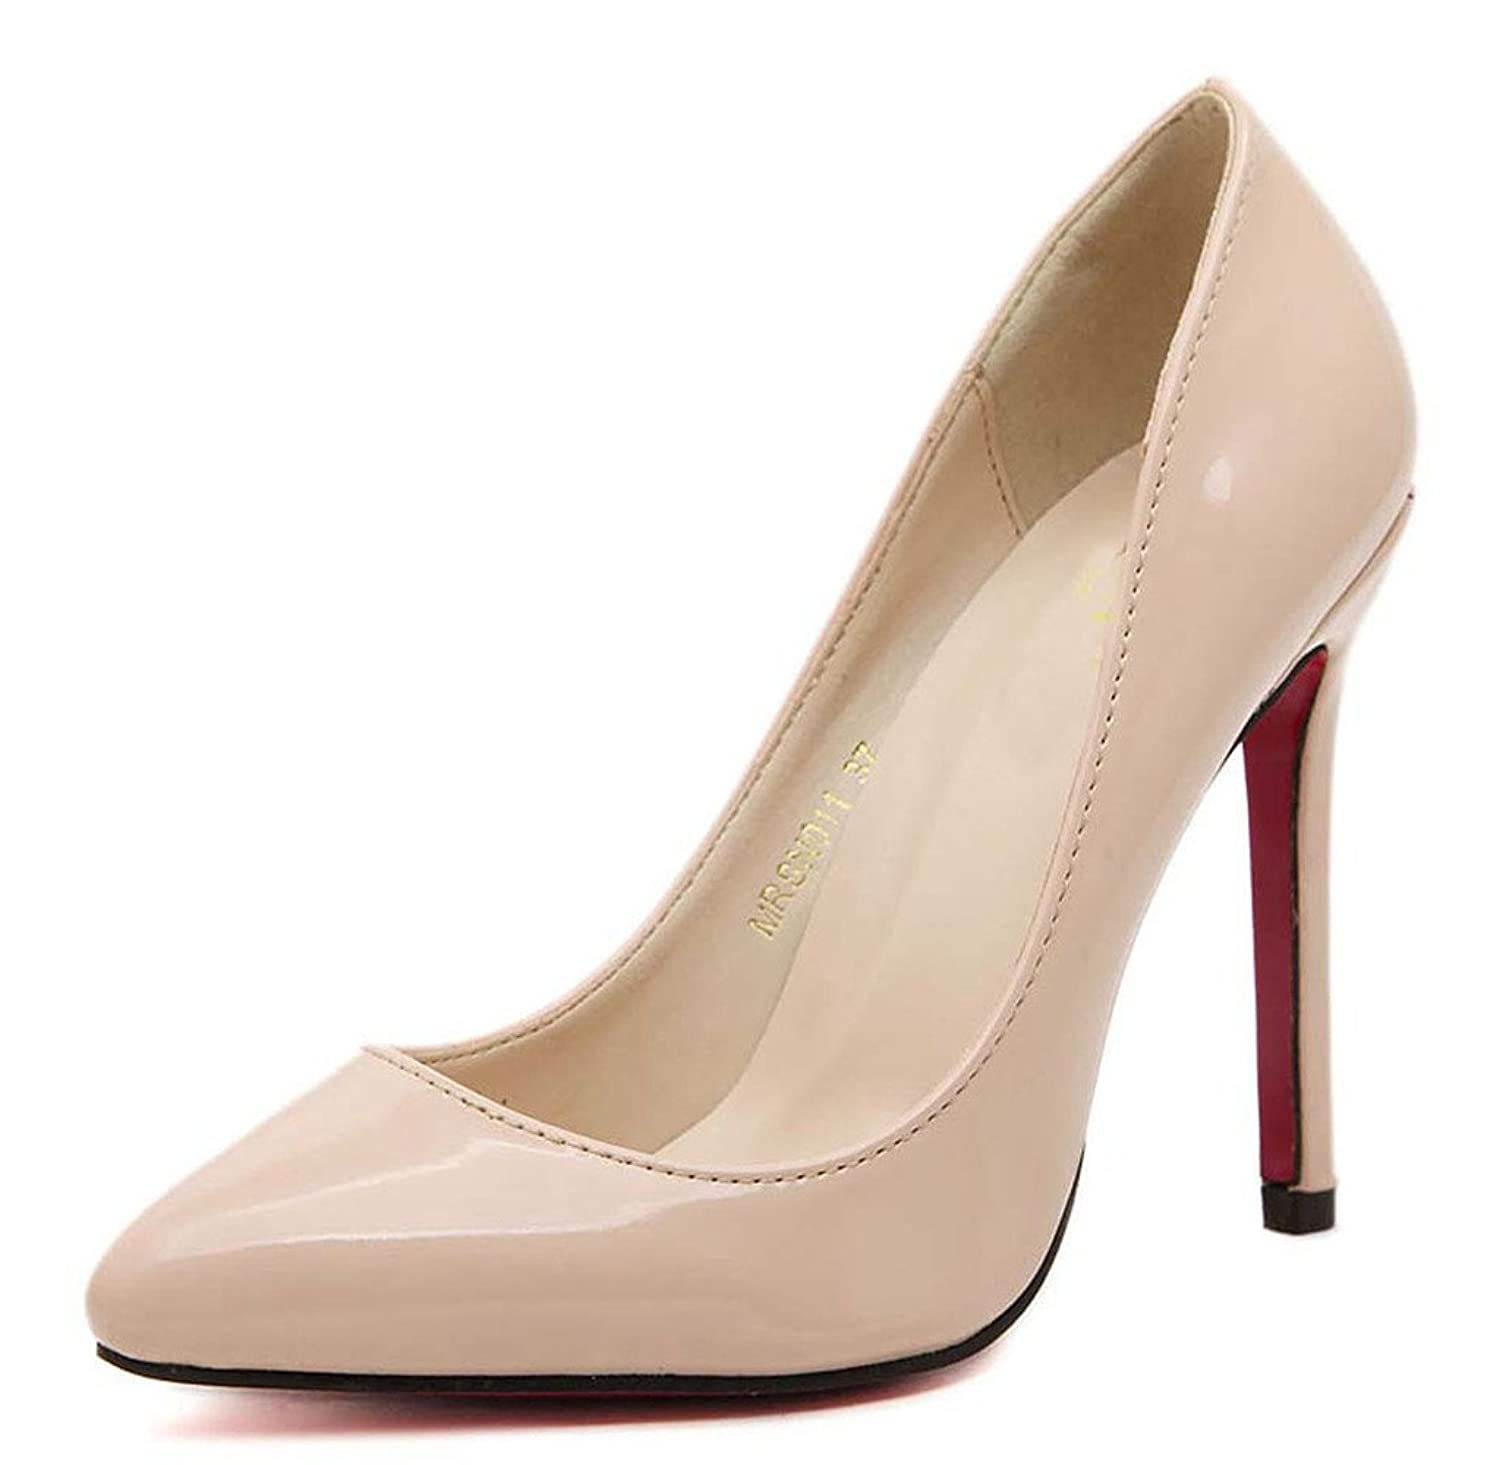 baf03ada85151 50%OFF Katypeny Women's Fashion Sexy Shallow Mouth Pointed Toe Slip ...